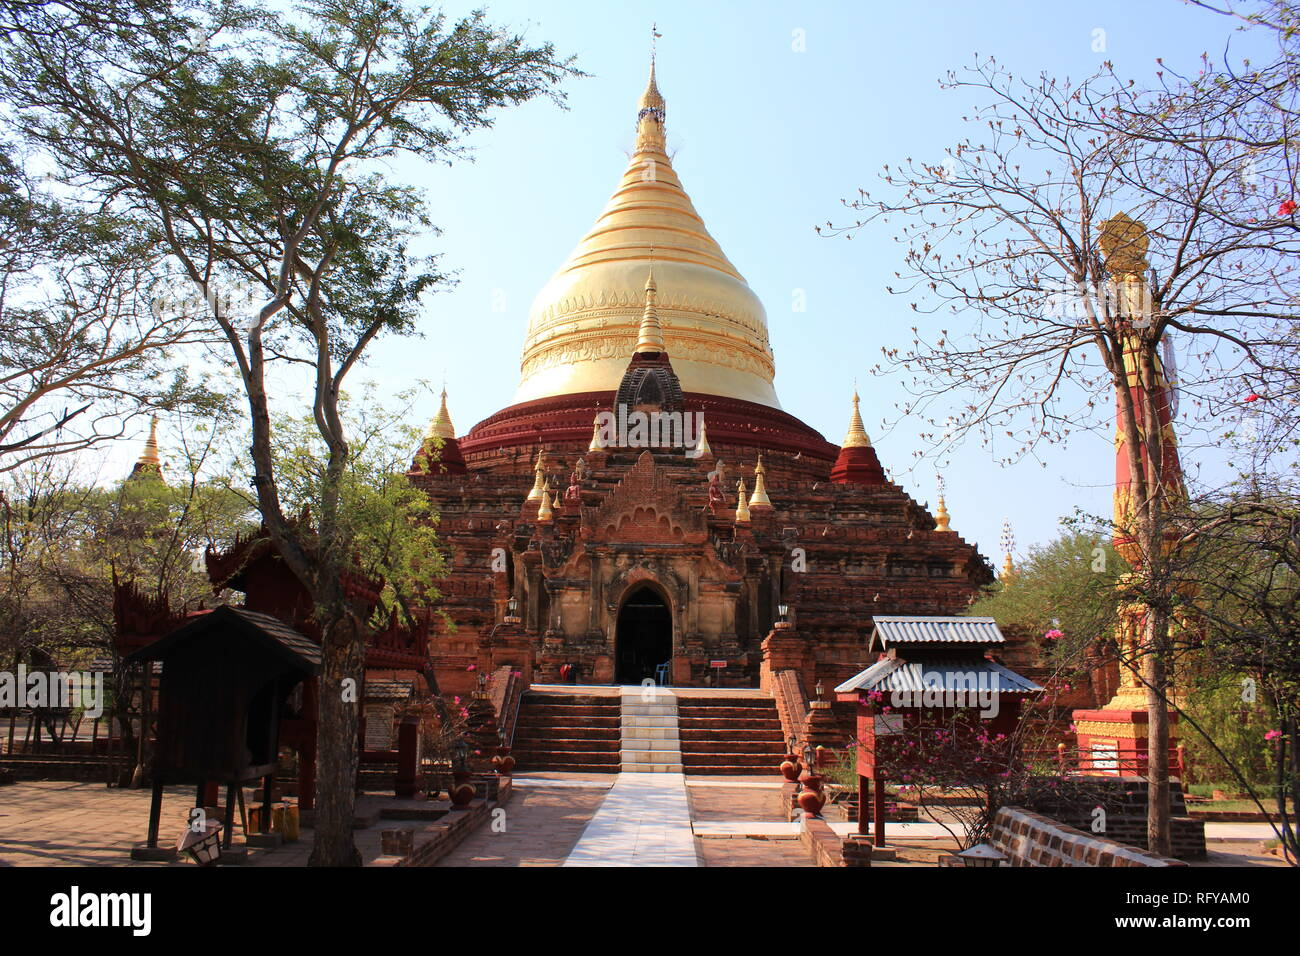 Temple with golden dome on a hot and sunny day in Bagan, Myanmar - Stock Image